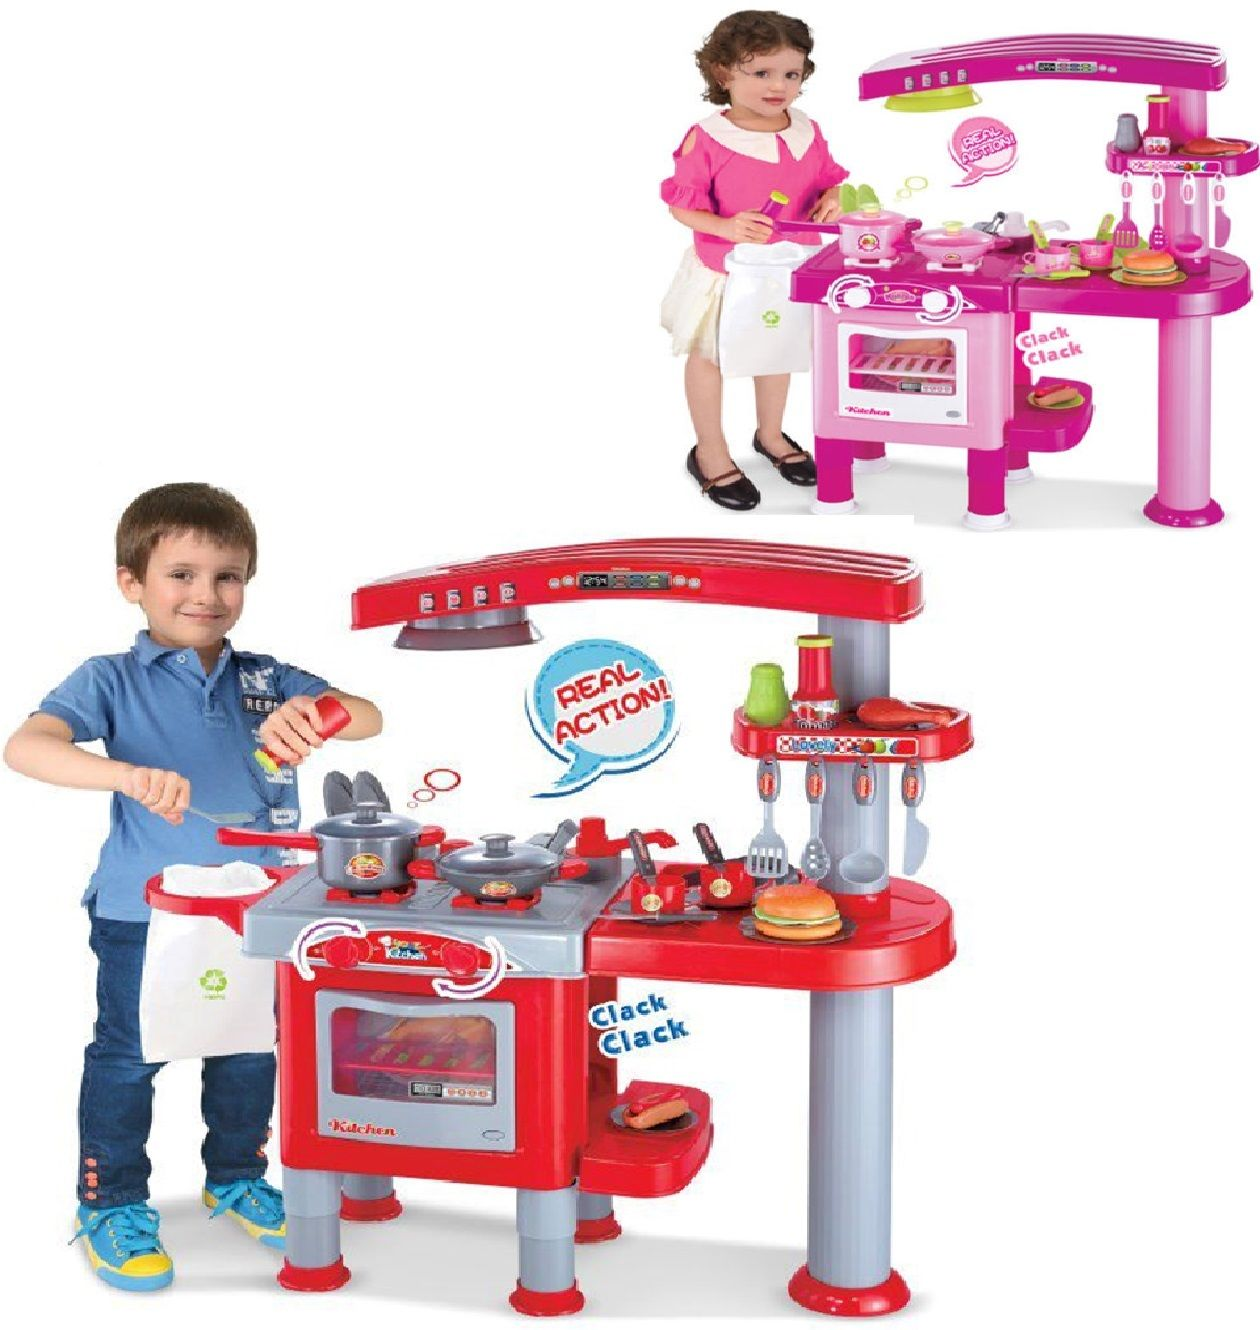 Play Cooking Toys : Large kitchen small kids childs playset role play food